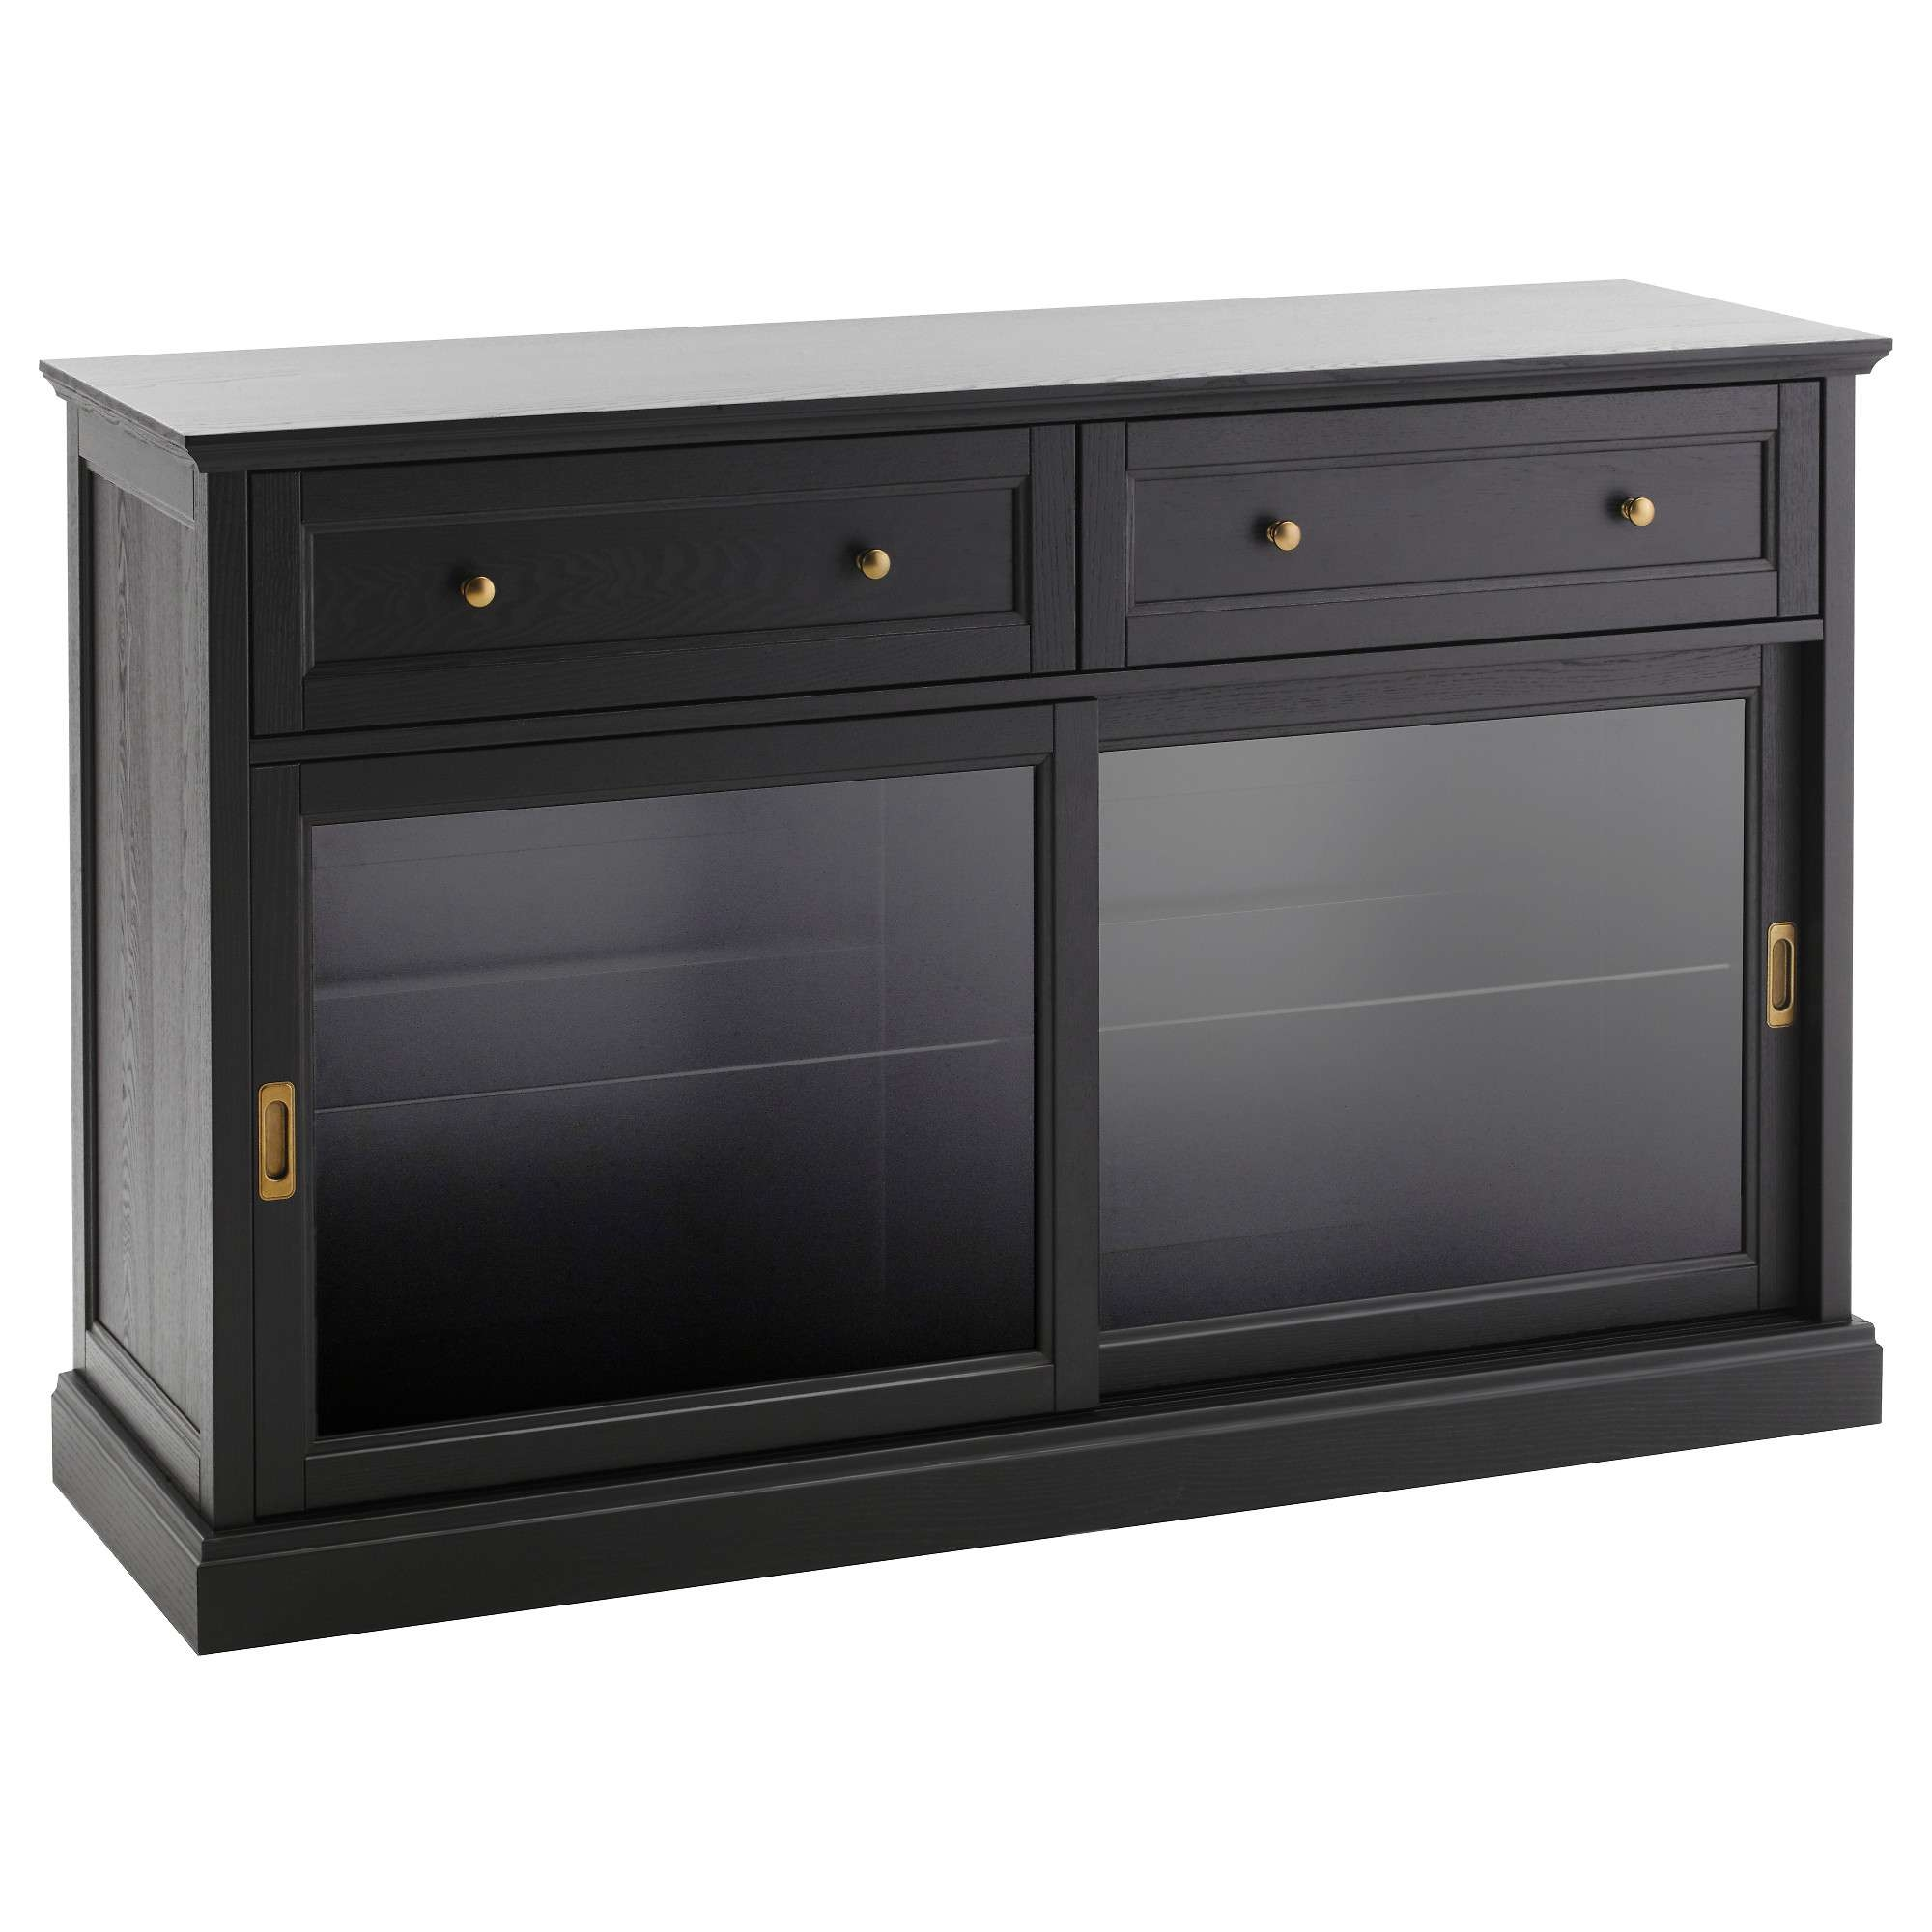 Buffet Tables & Sideboards – Ikea Inside Buffets Sideboards (View 19 of 20)